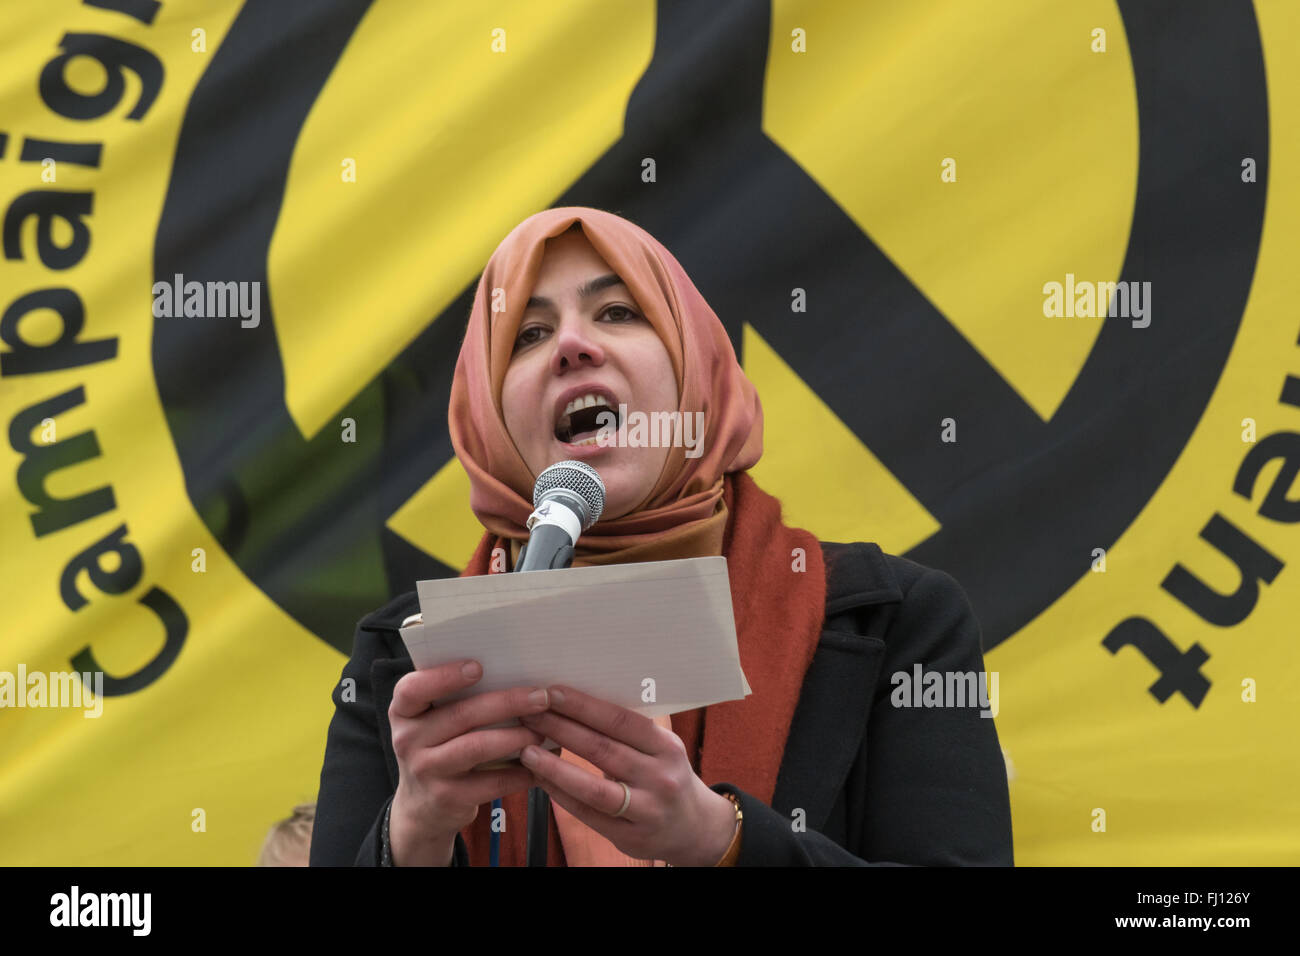 London, UK. 27th February 2016. Raghad Altikriti of the Muslim Association of Britain speaks at the rally opposed - Stock Image